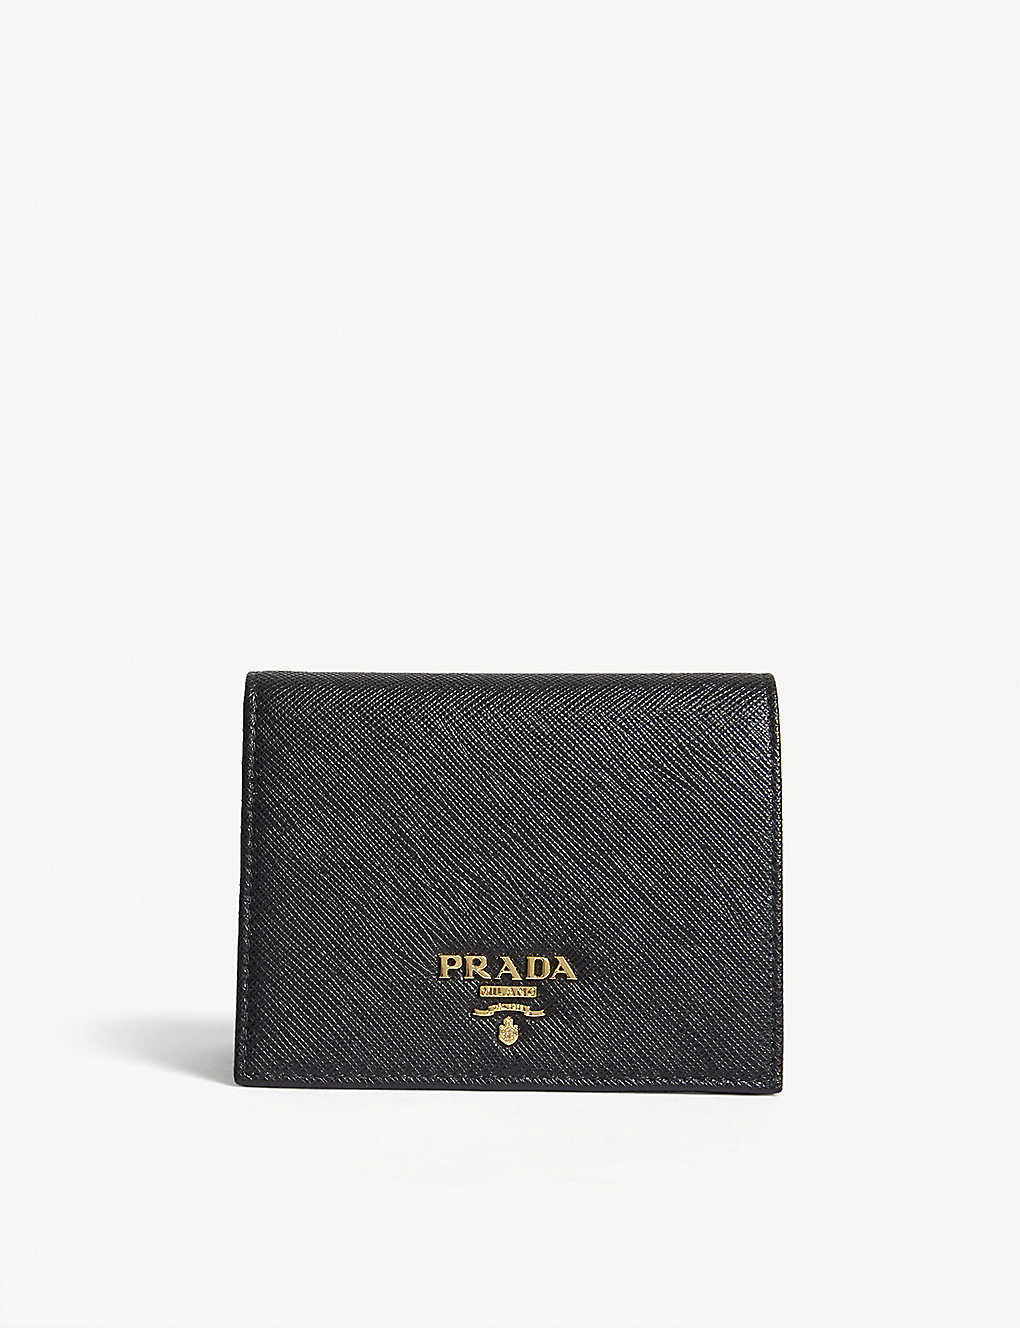 6b0f61b74a9892 PRADA - Logo small Saffiano leather purse | Selfridges.com